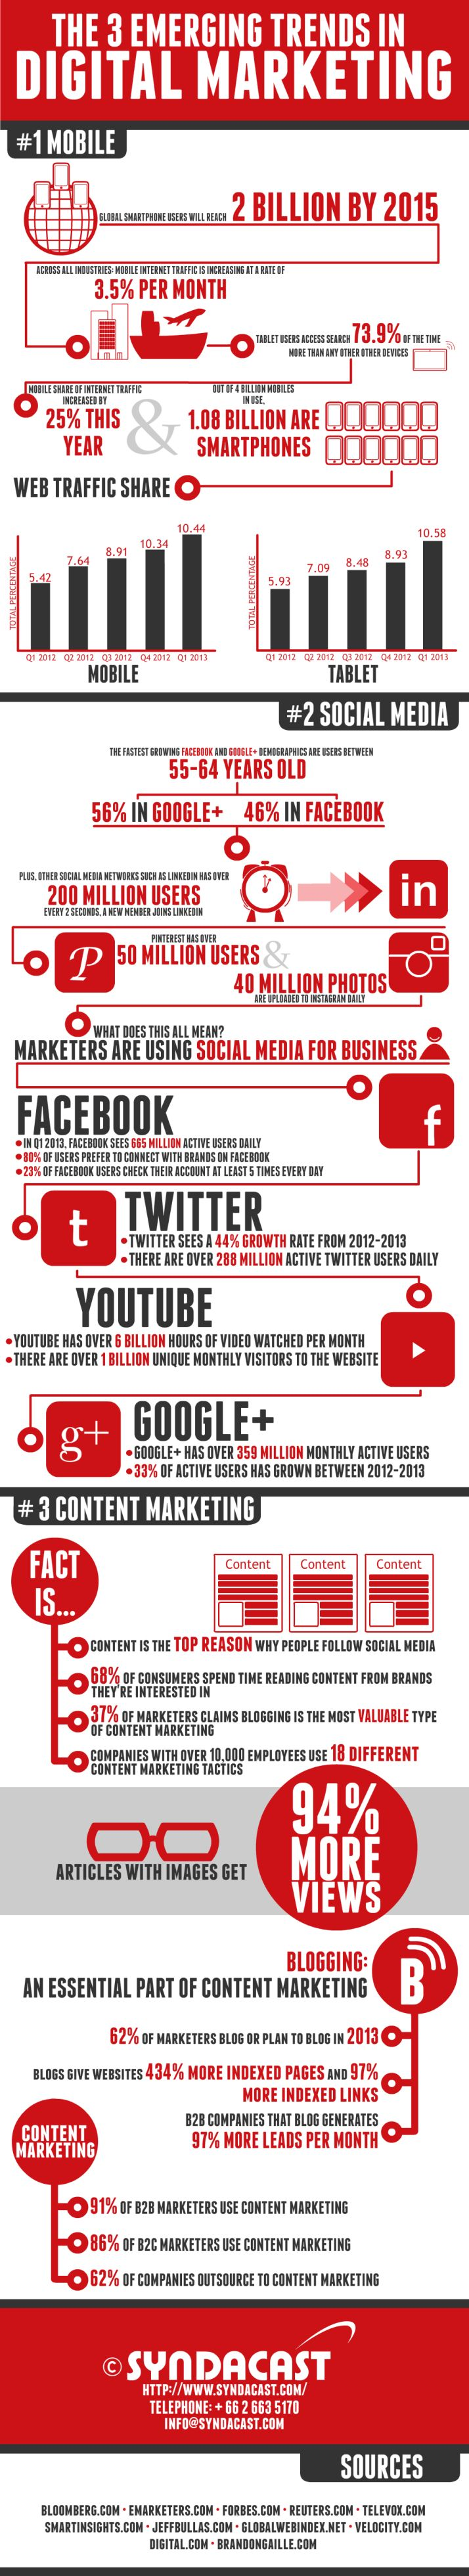 Infographic: The 3 Emerging Trends in Digital Marketing  #infographic #digitalmarketing #trends #9dotstrategies